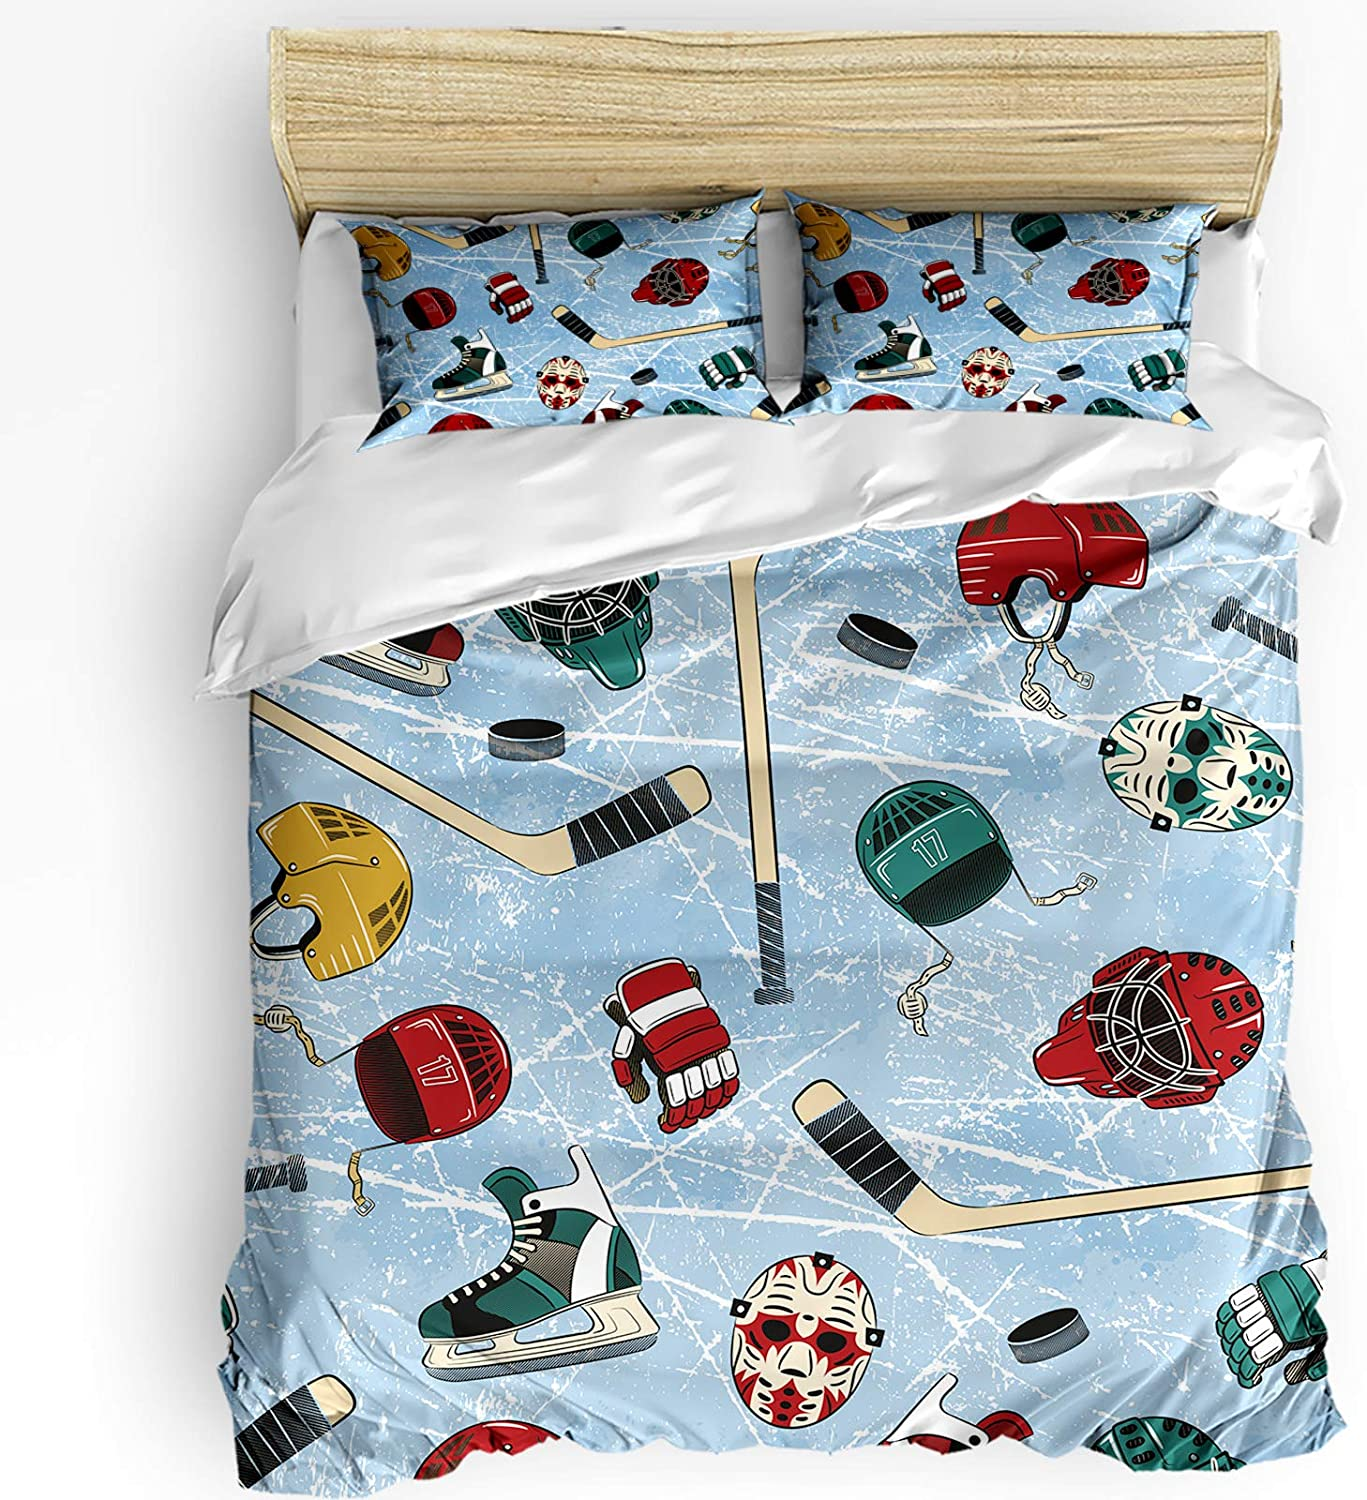 HELLOWINK Duvet Cover 3 Piece Bedding Hoc Fresno Mall Set Cartoon Size Full Recommended